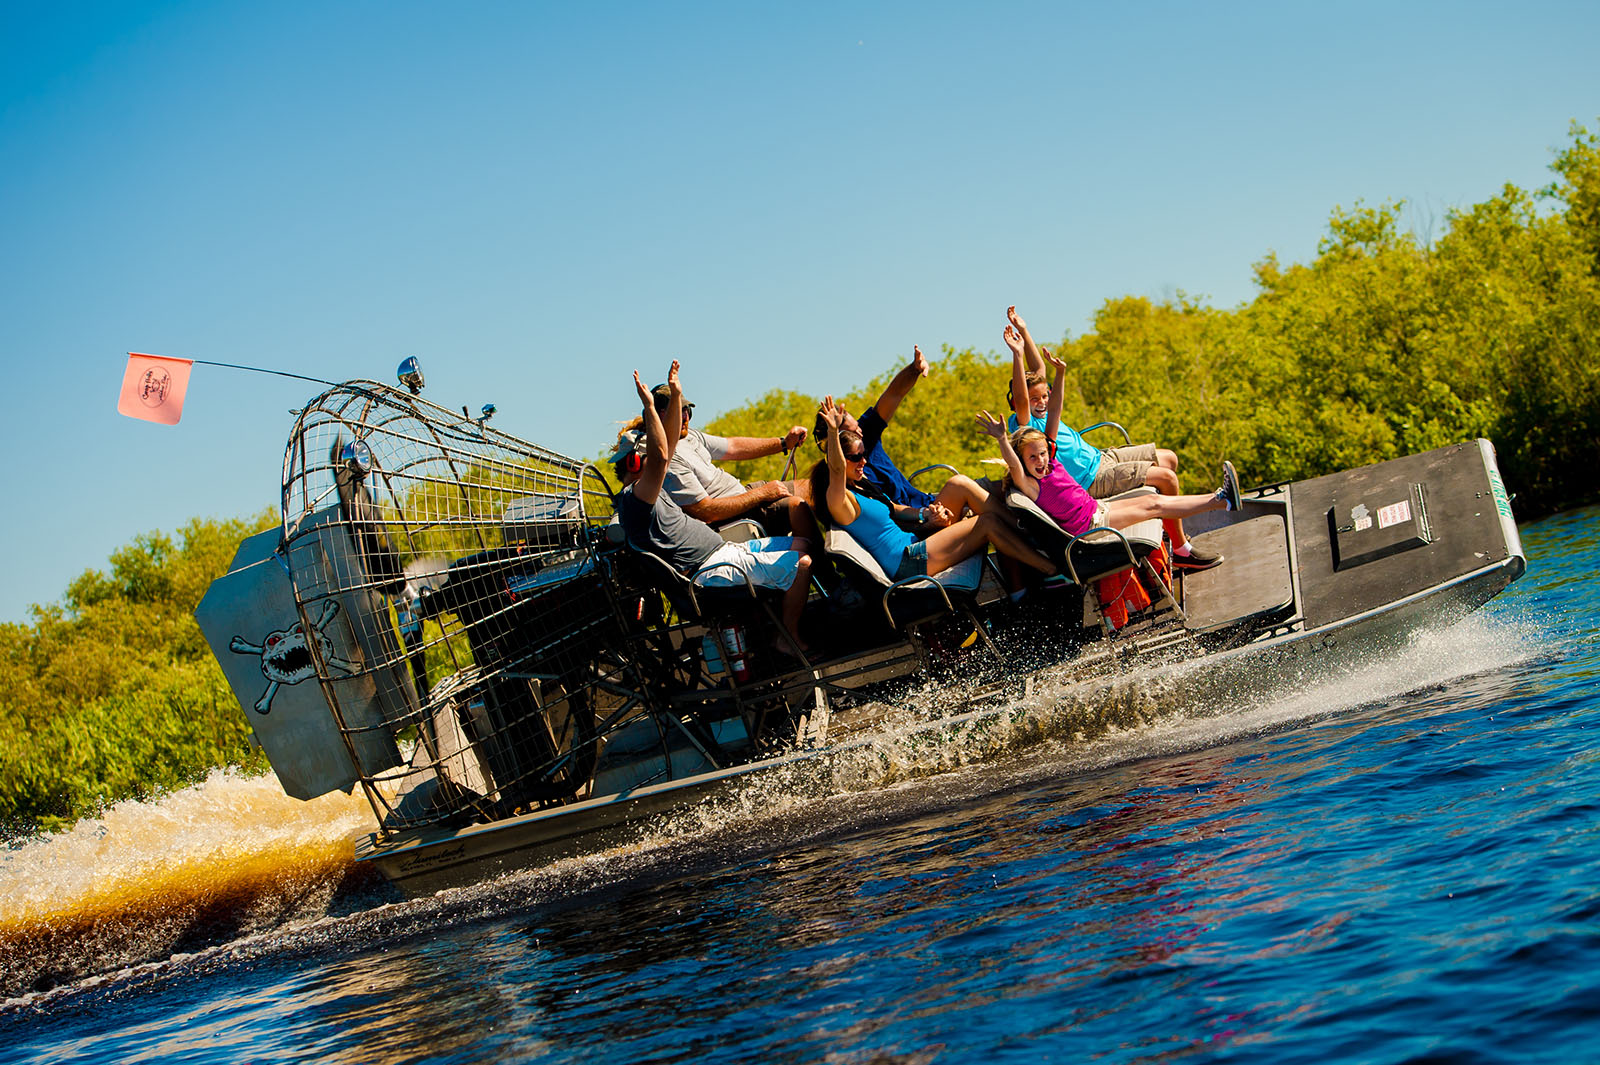 Airboat Rides in Central Florida